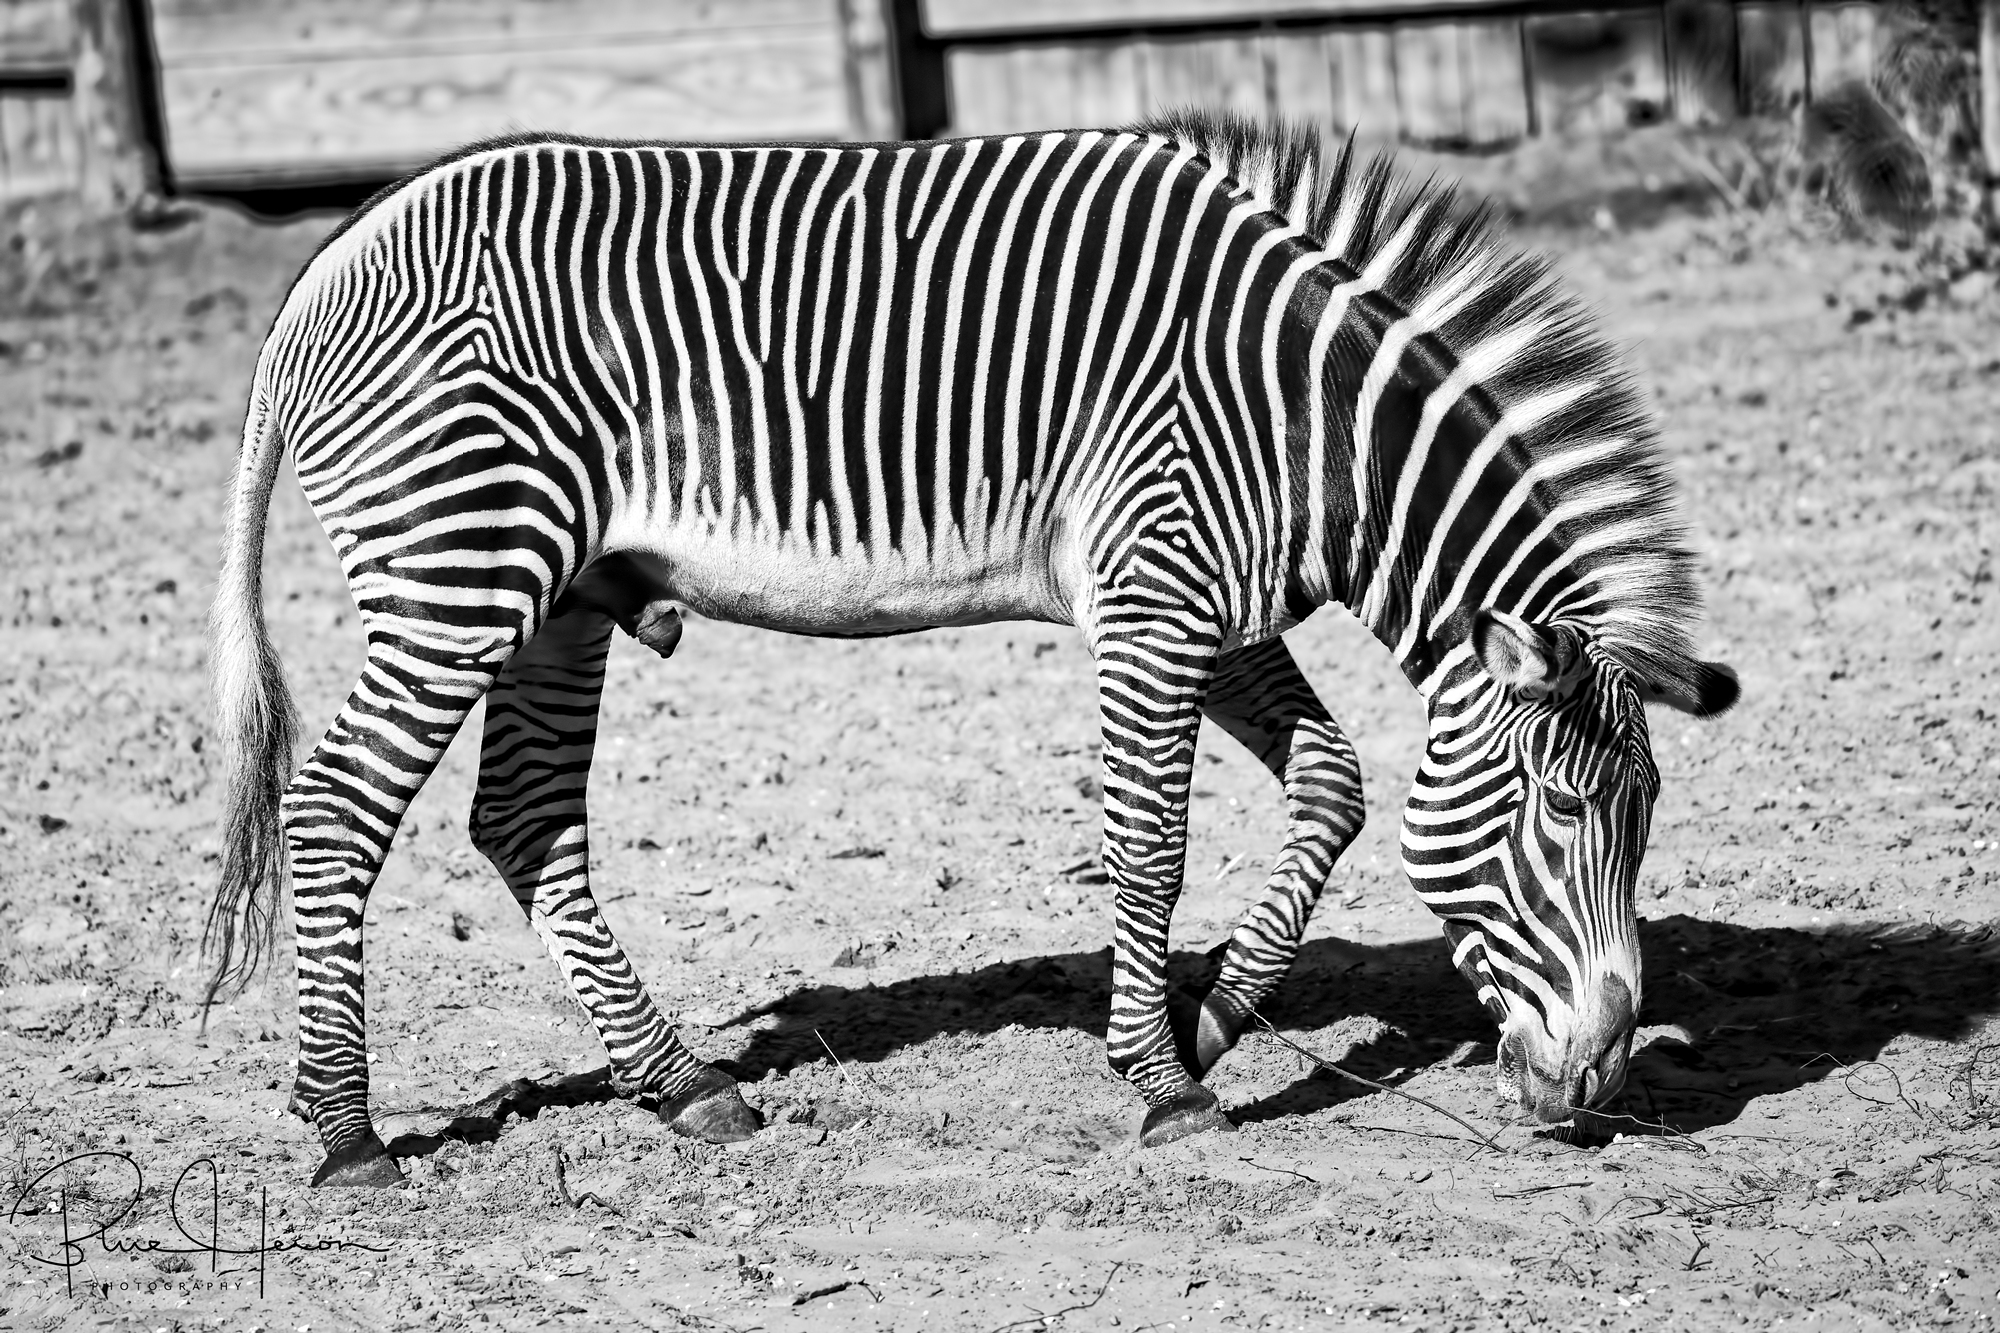 Most of the animals were normal,like black and white